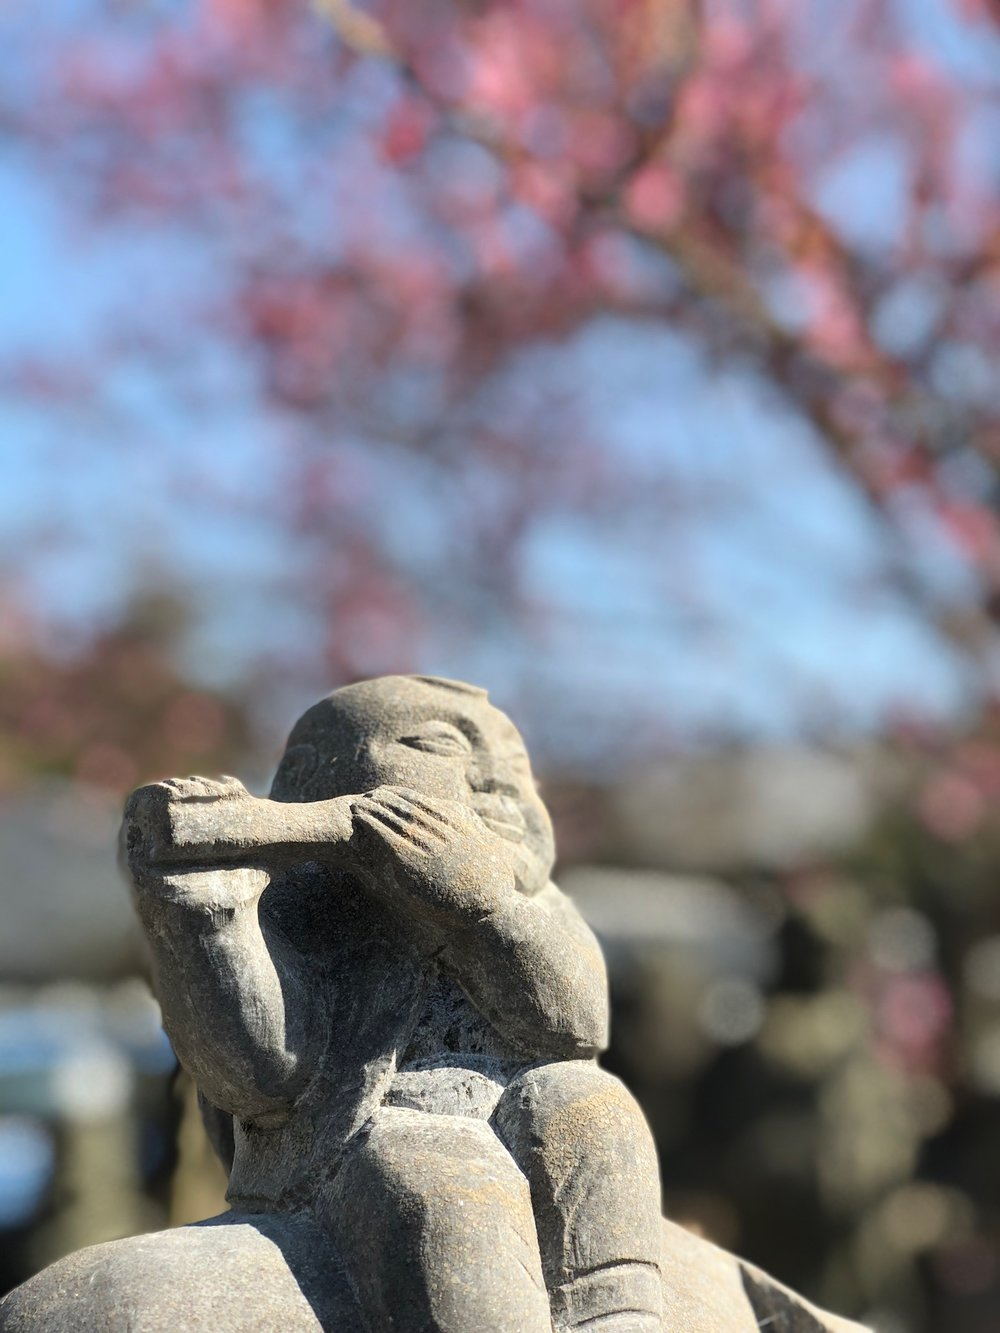 Our next stop was a cluster of sightseeing spots on the western side of Kyoto. This little stone flautist was in a massive arrangement of similar figures on the grounds of Tenryu-ji temple.